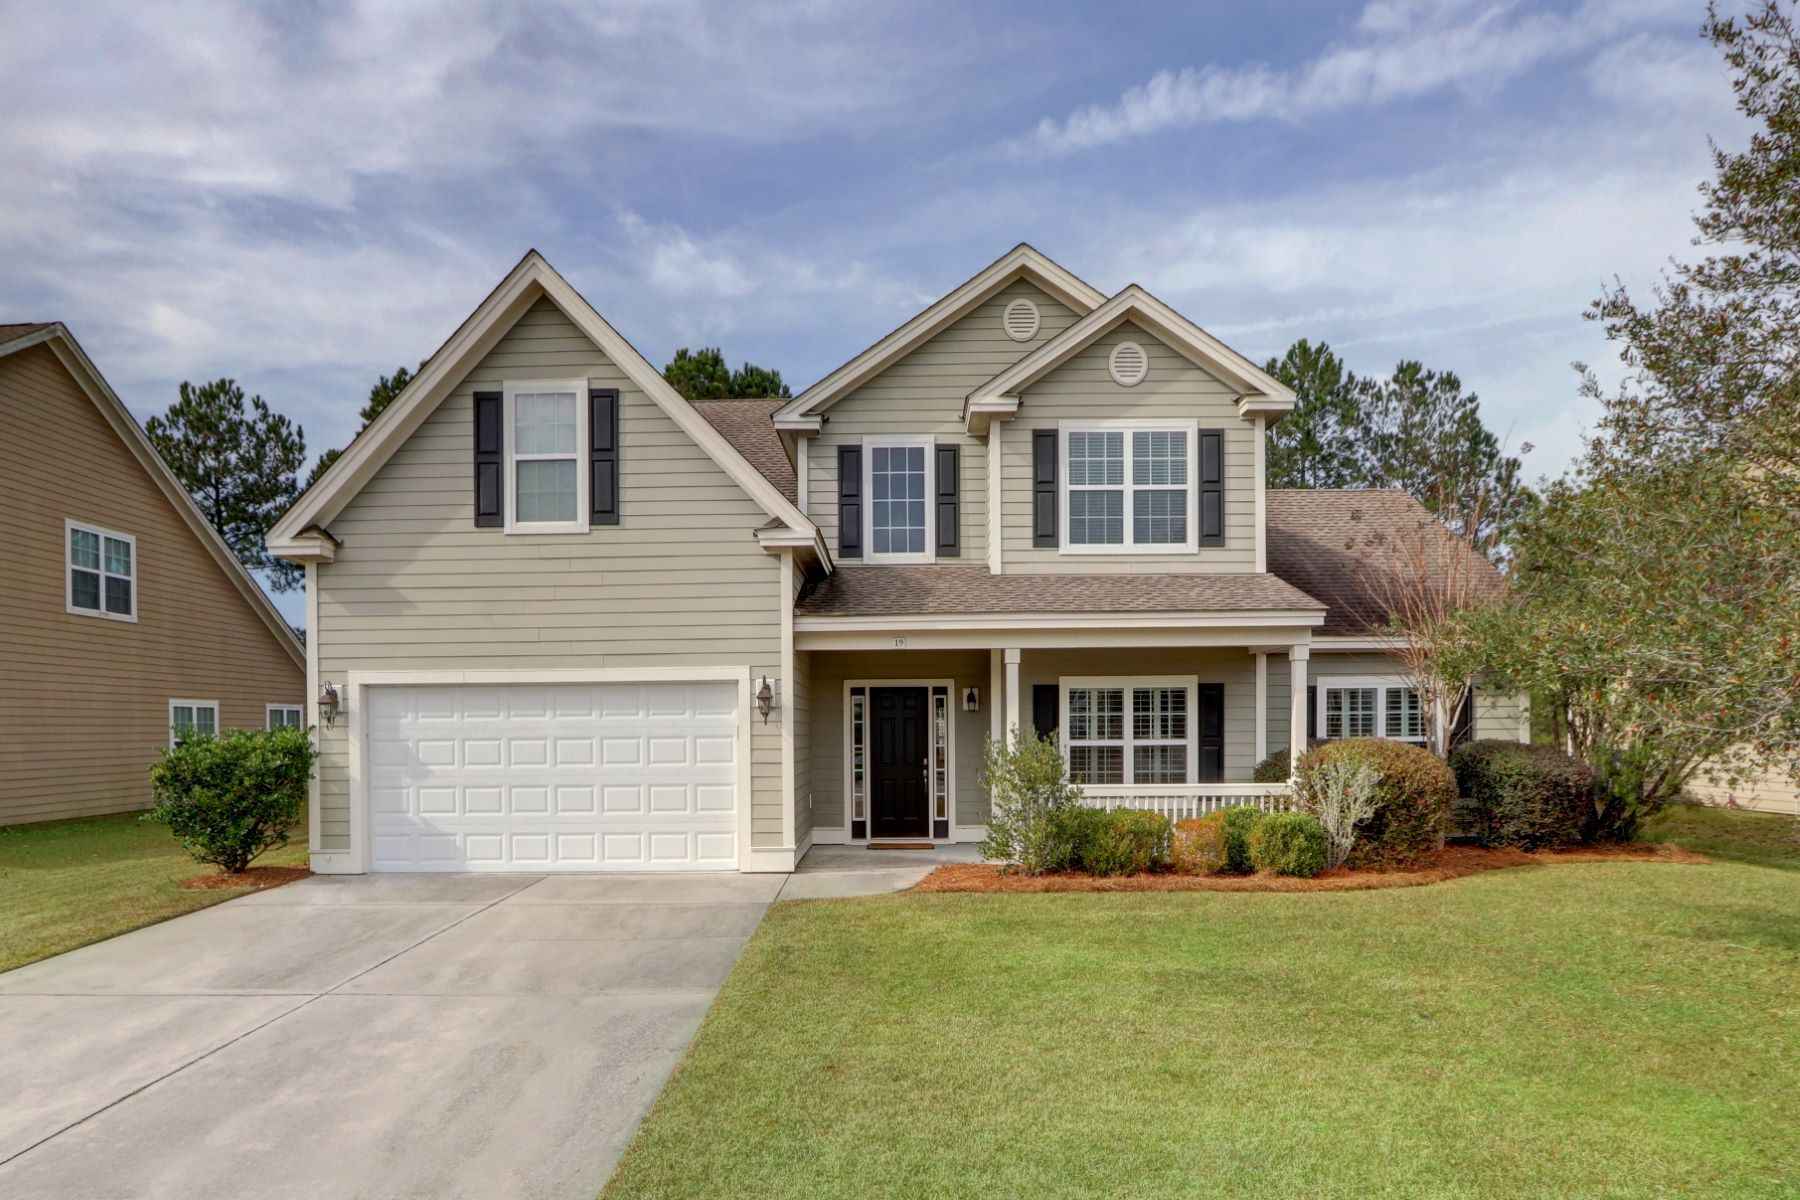 Single Family Homes for Active at 19 Olde Gate Court Pooler, Georgia 31322 United States